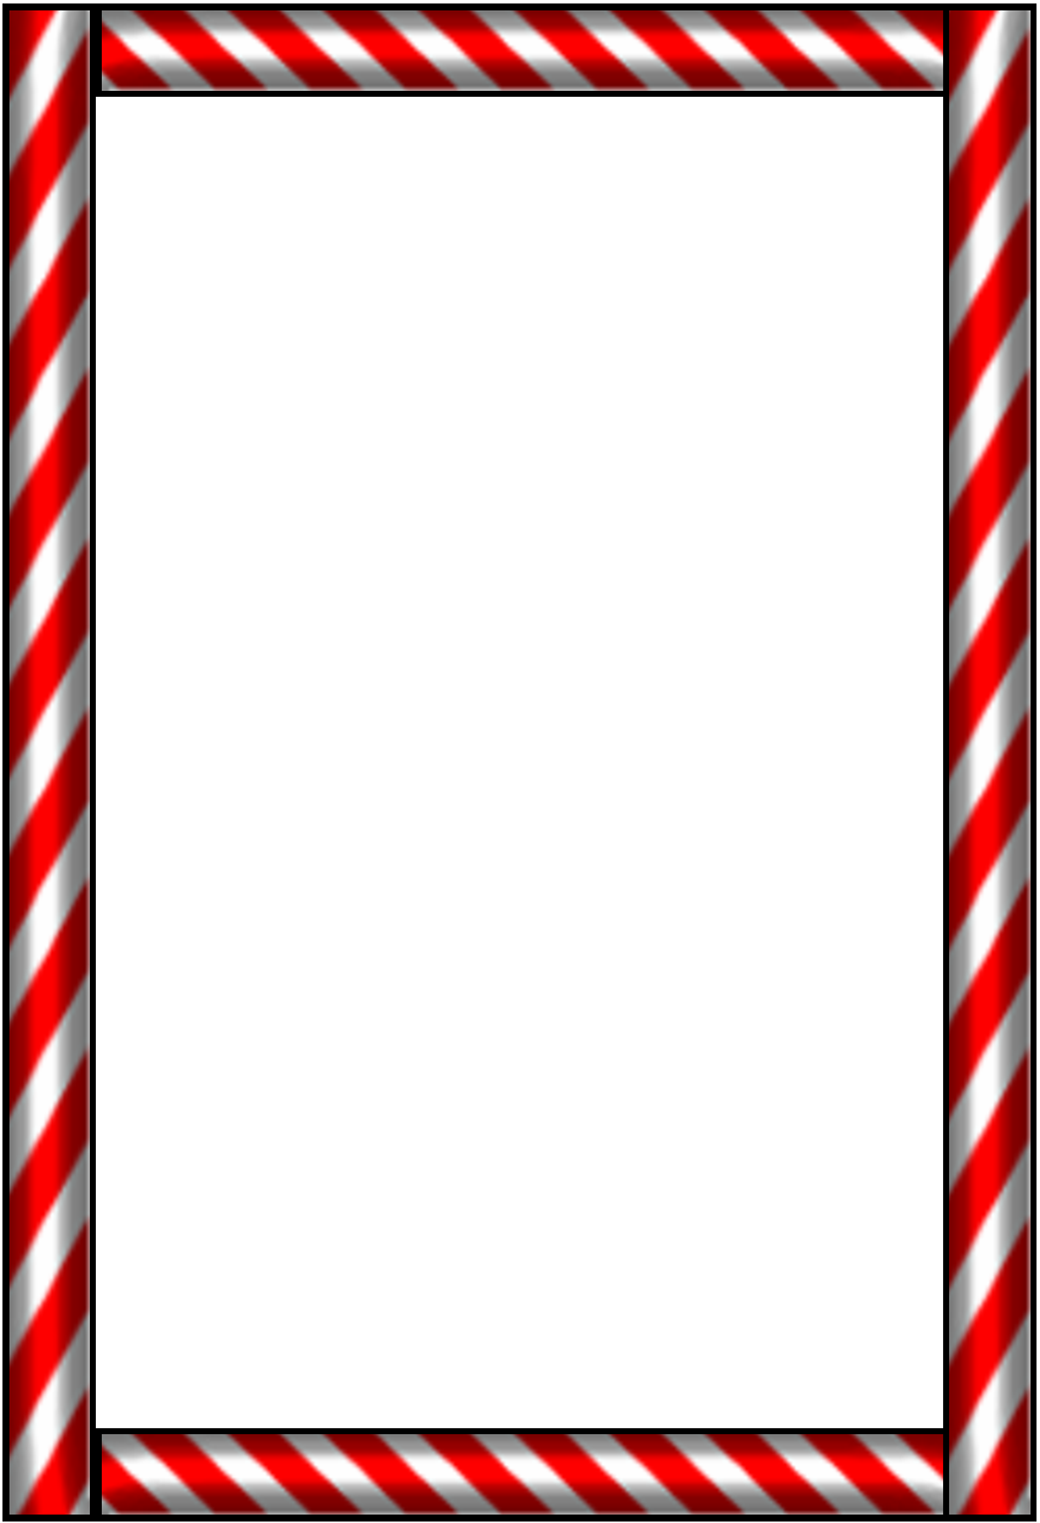 Candy cane border png. Clip art borders google